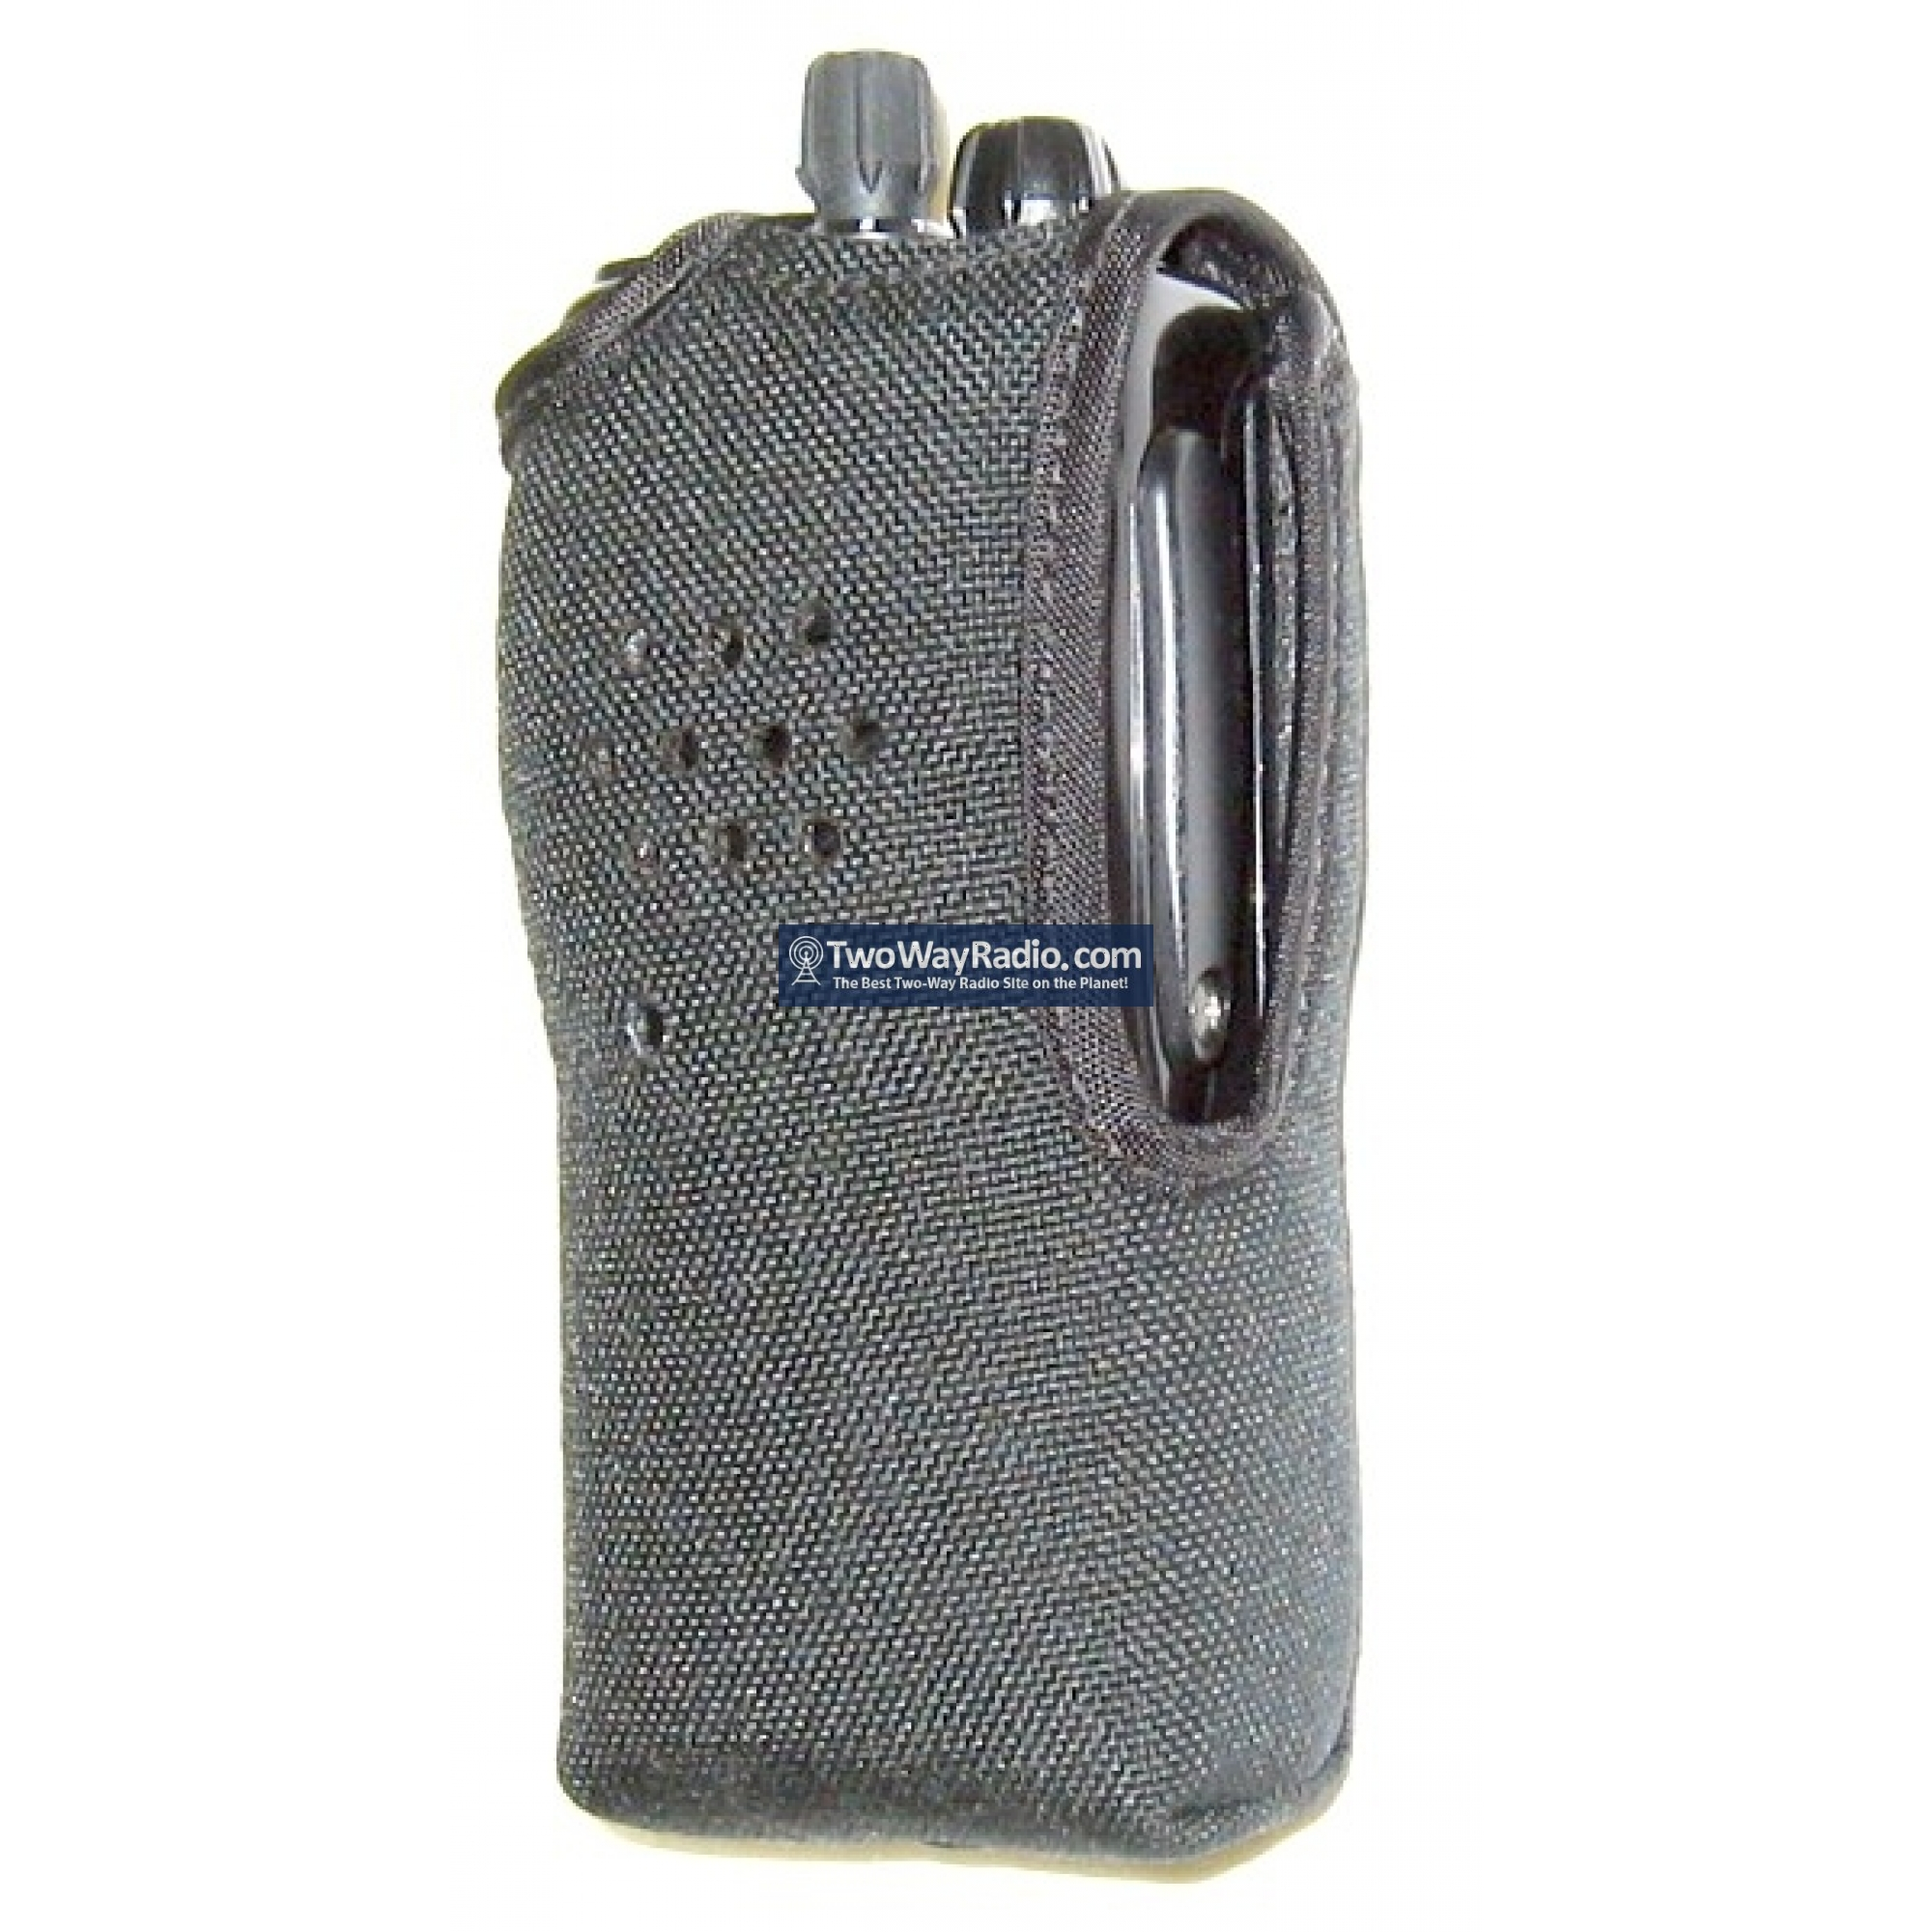 Nylon Carrying Case For Two Way Radio With Metal Belt Clip